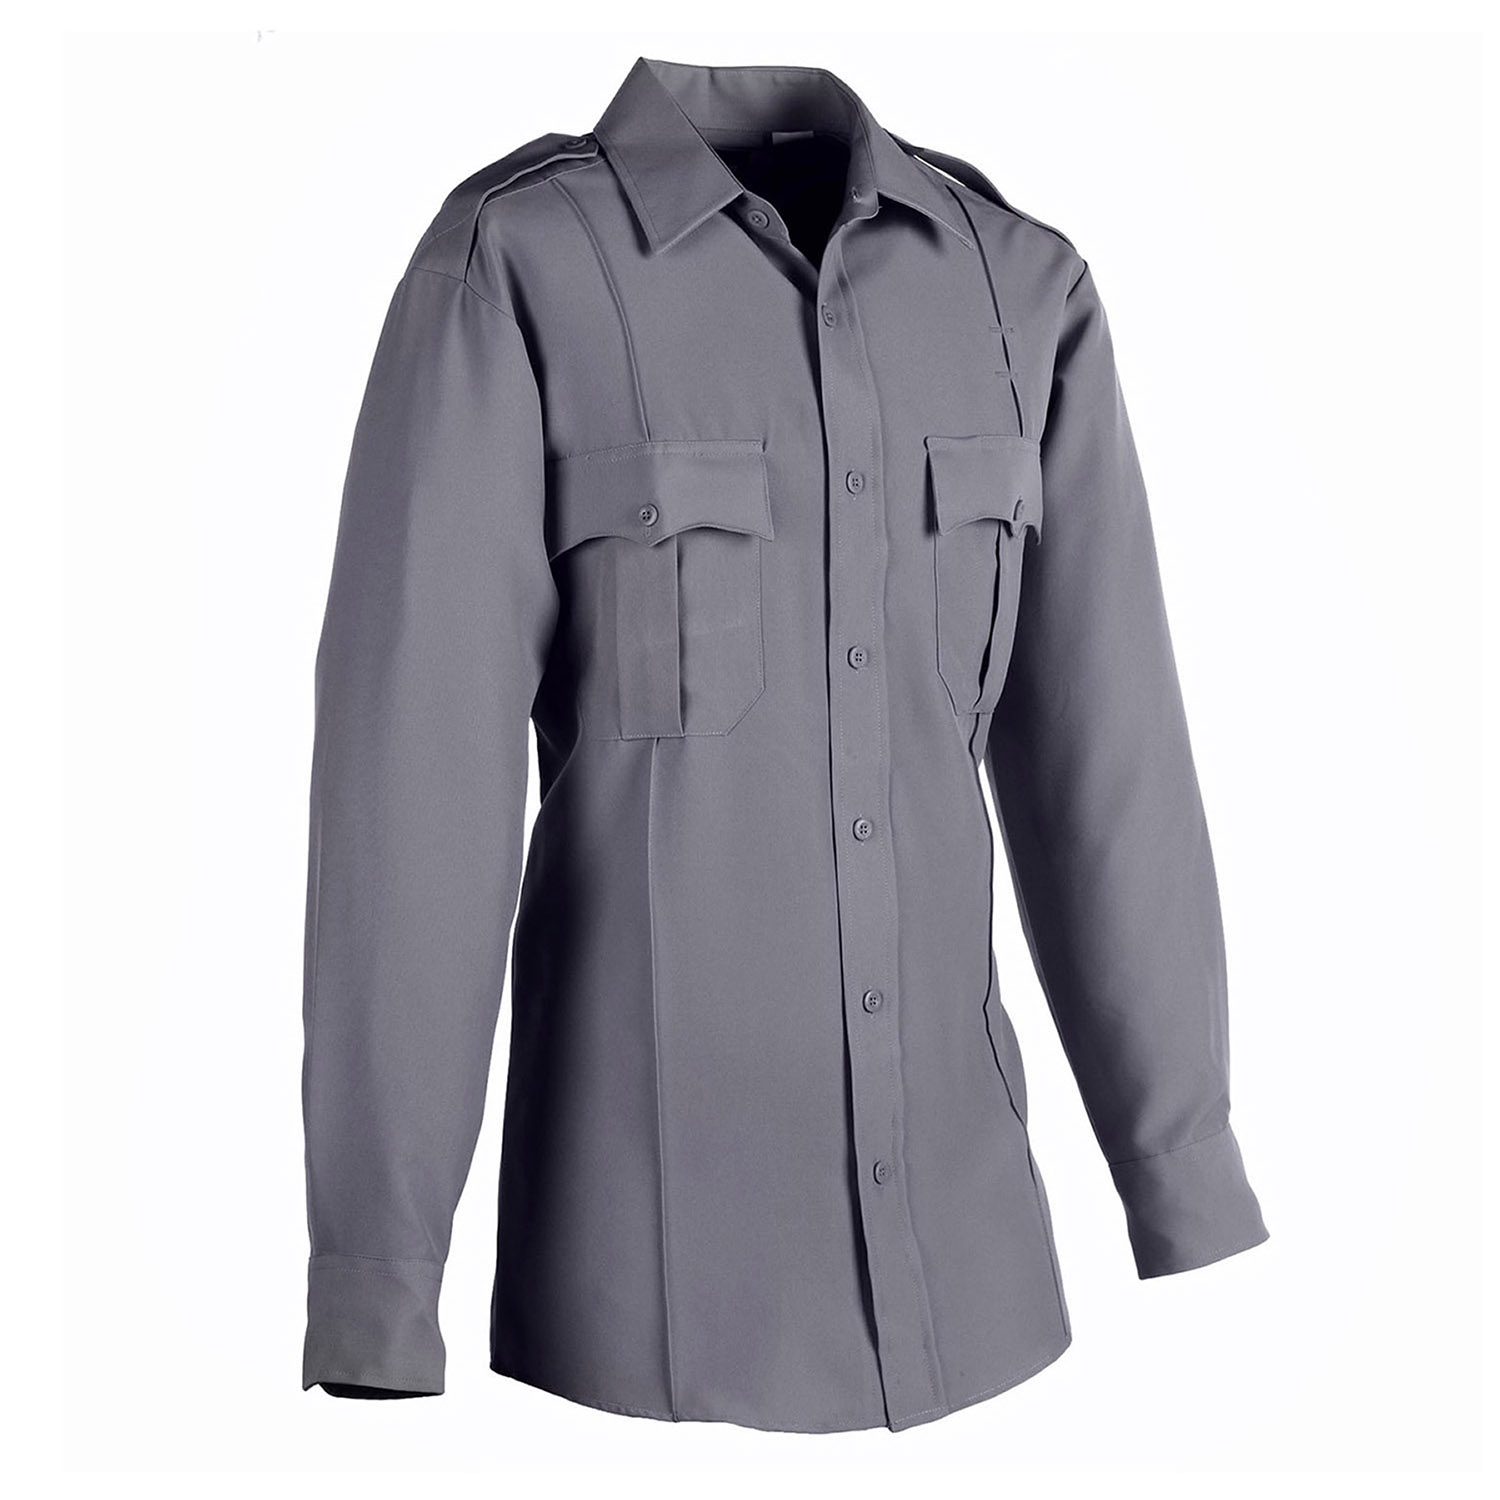 Cover Image For Paramedic Long Sleeve Shirt - Long